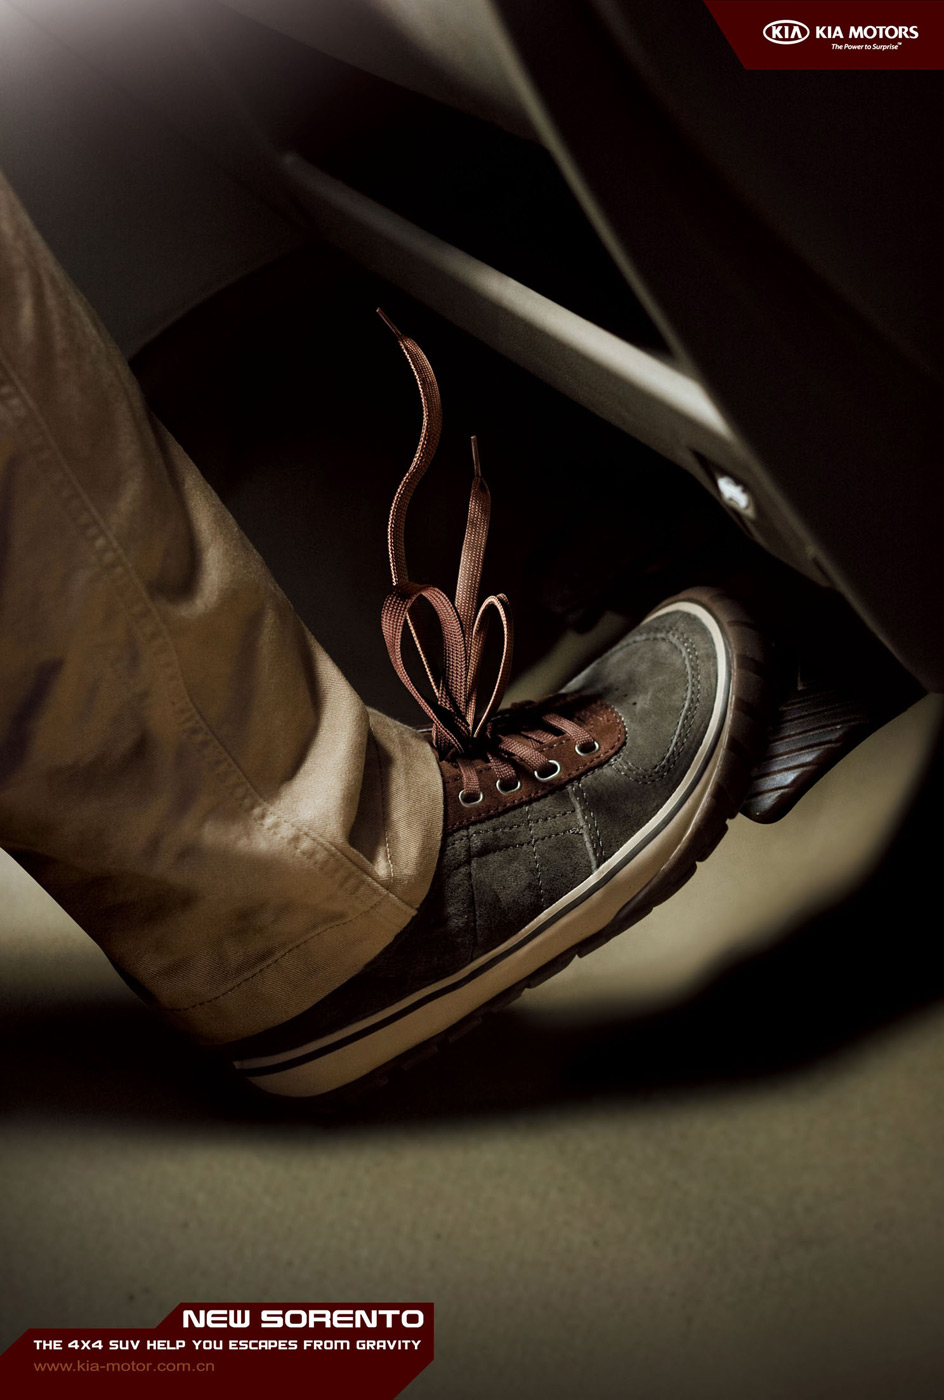 KIA-Motors-Shoelace 40 Most Creative and Dazzling Auto Ads